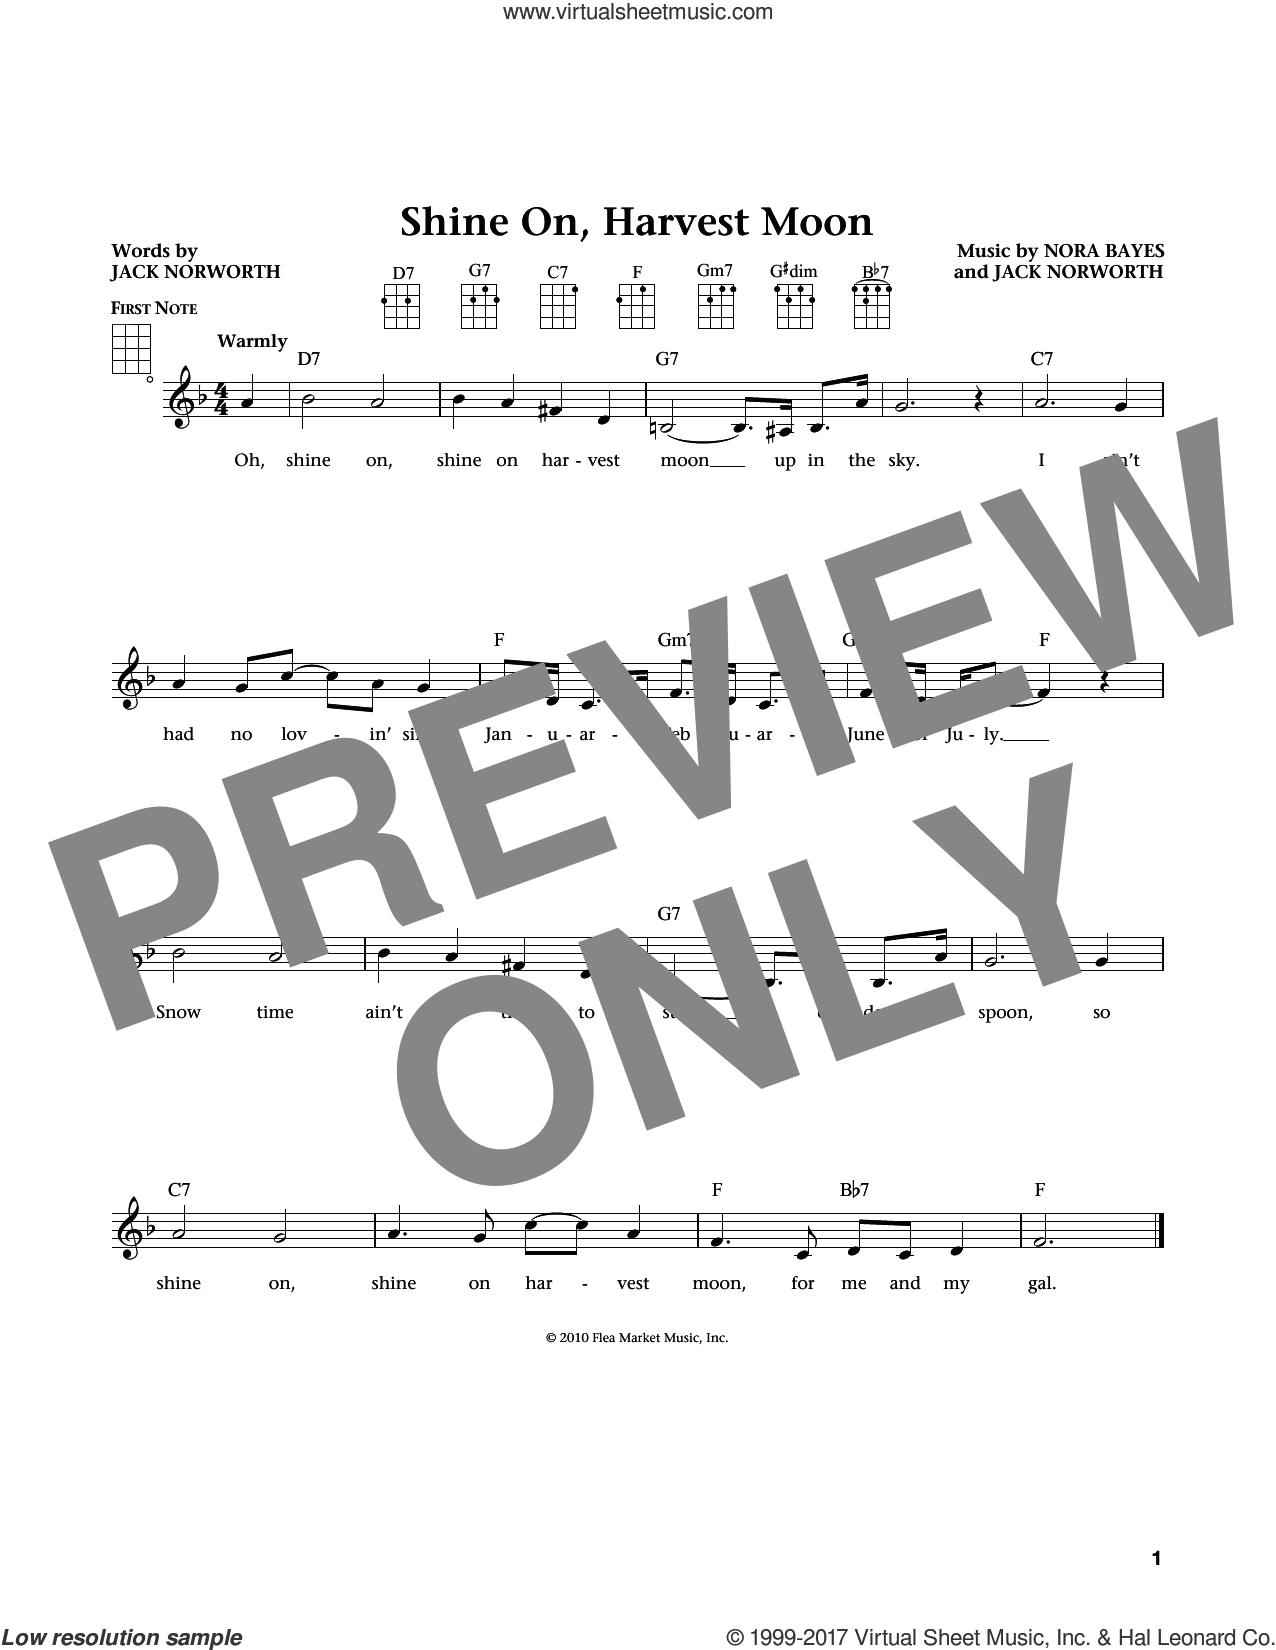 Shine On, Harvest Moon (from The Daily Ukulele) (arr. Liz and Jim Beloff) sheet music for ukulele by Jack Norworth, Jim Beloff, Liz Beloff and Nora Bayes, intermediate skill level